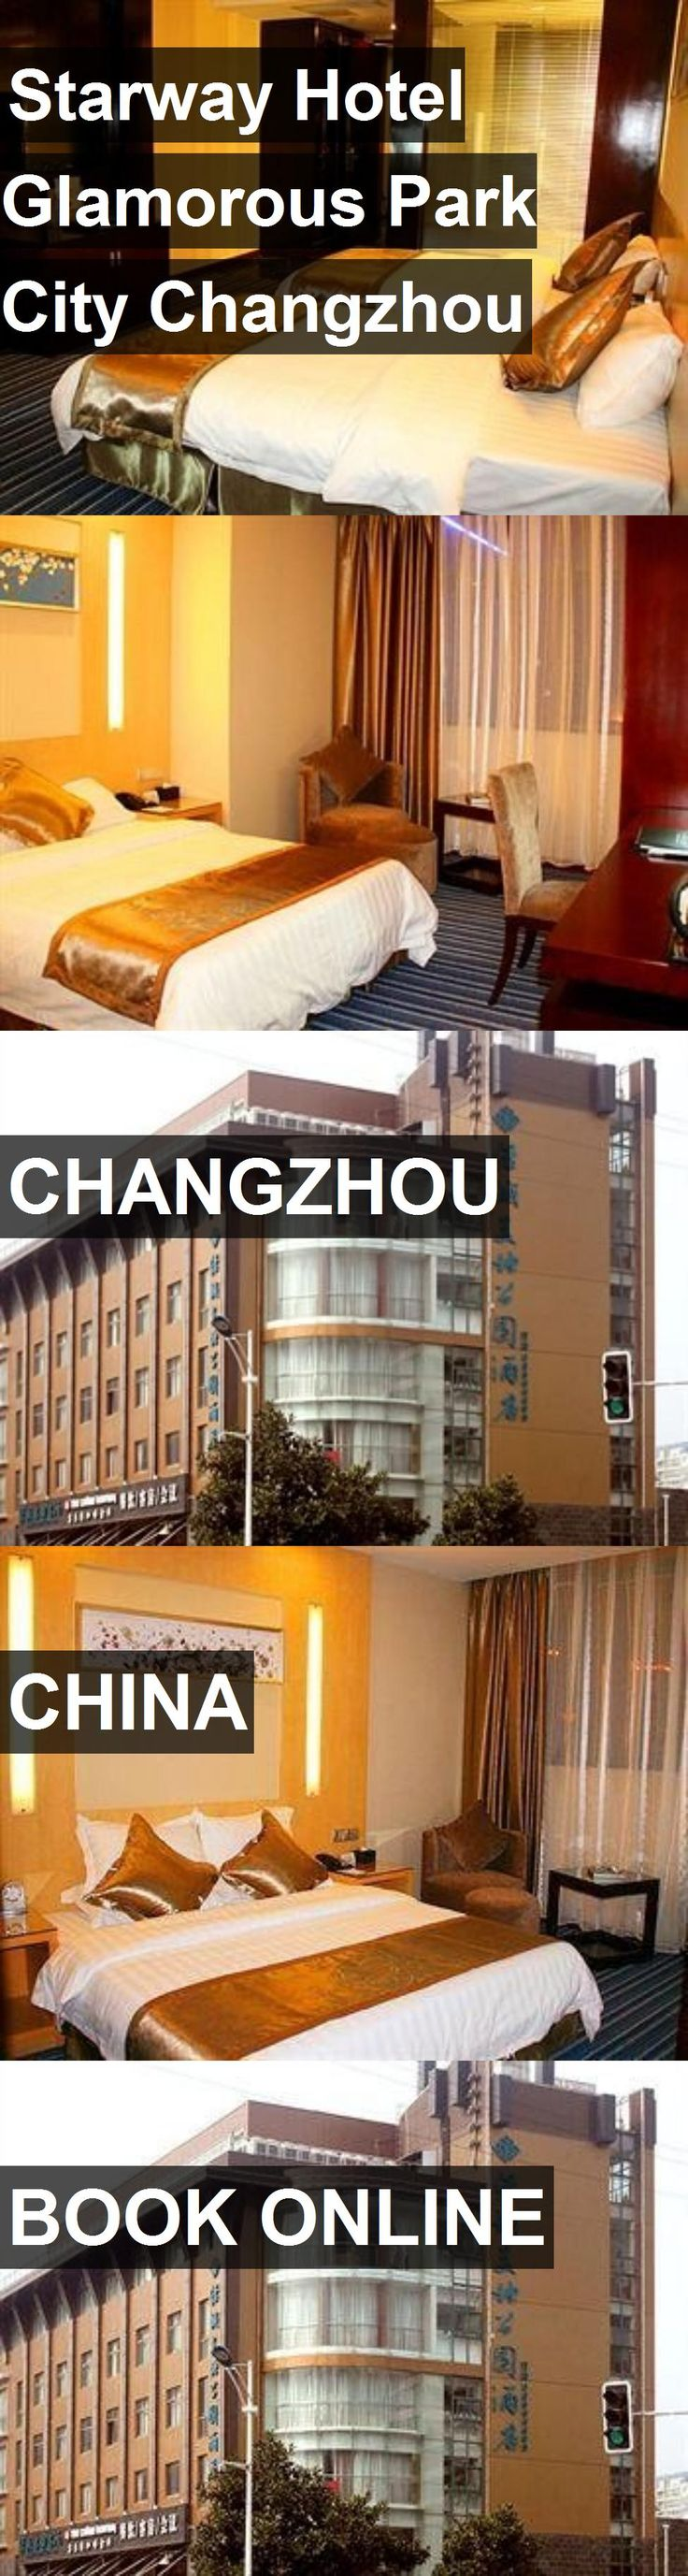 Hotel Starway Hotel Glamorous Park City Changzhou in Changzhou, China. For more information, photos, reviews and best prices please follow the link. #China #Changzhou #StarwayHotelGlamorousParkCityChangzhou #hotel #travel #vacation